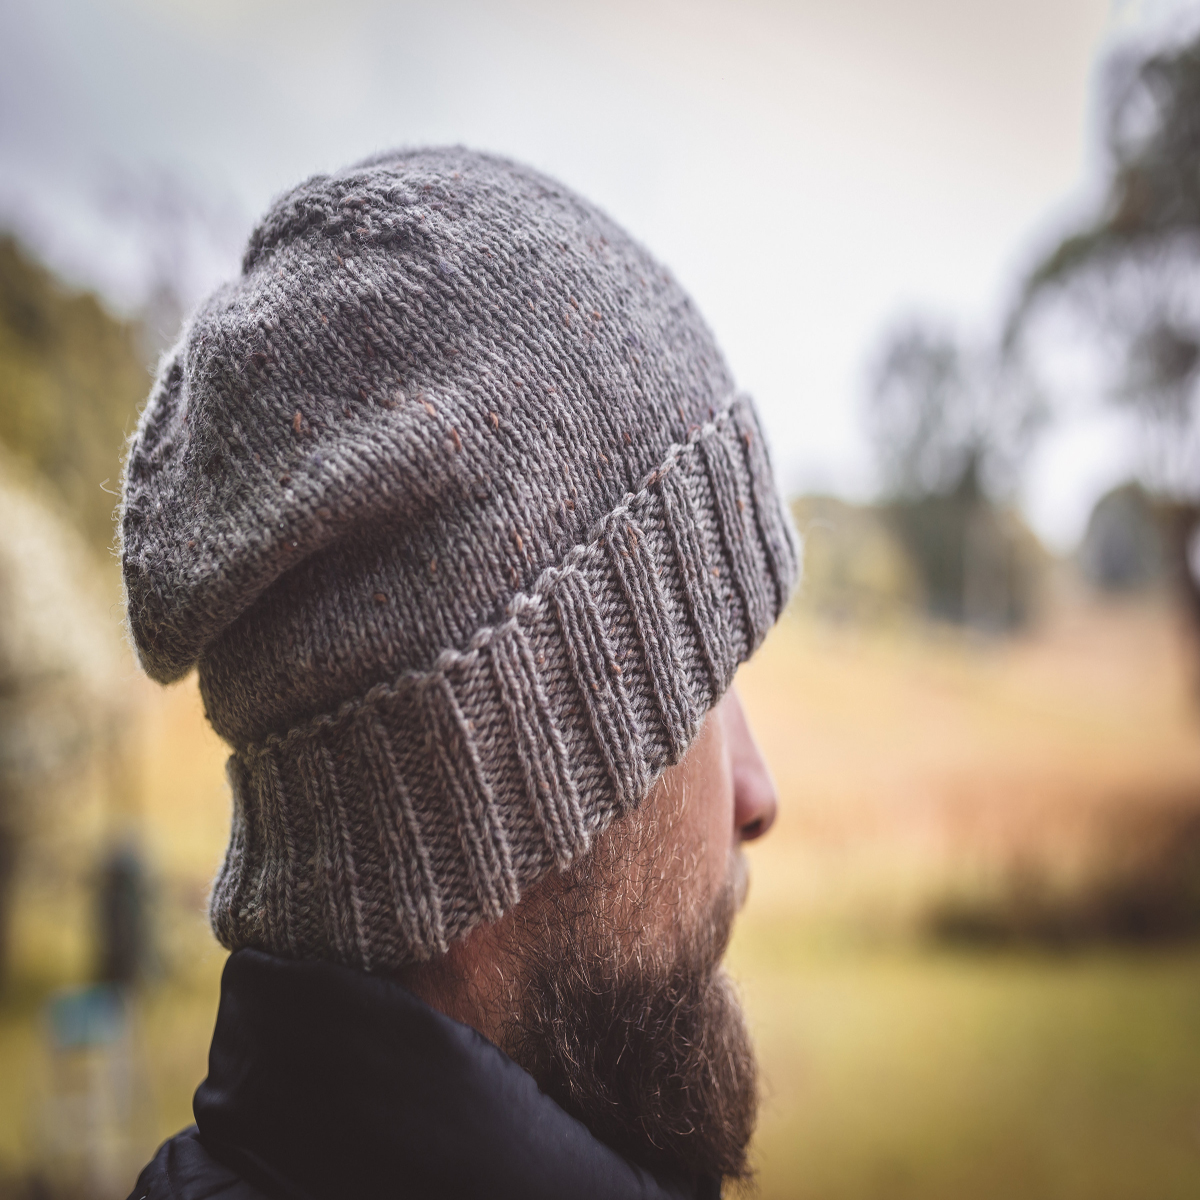 Men Speckled Grey Wool Knit Beanie With Foldable Brim By SiennaKnits